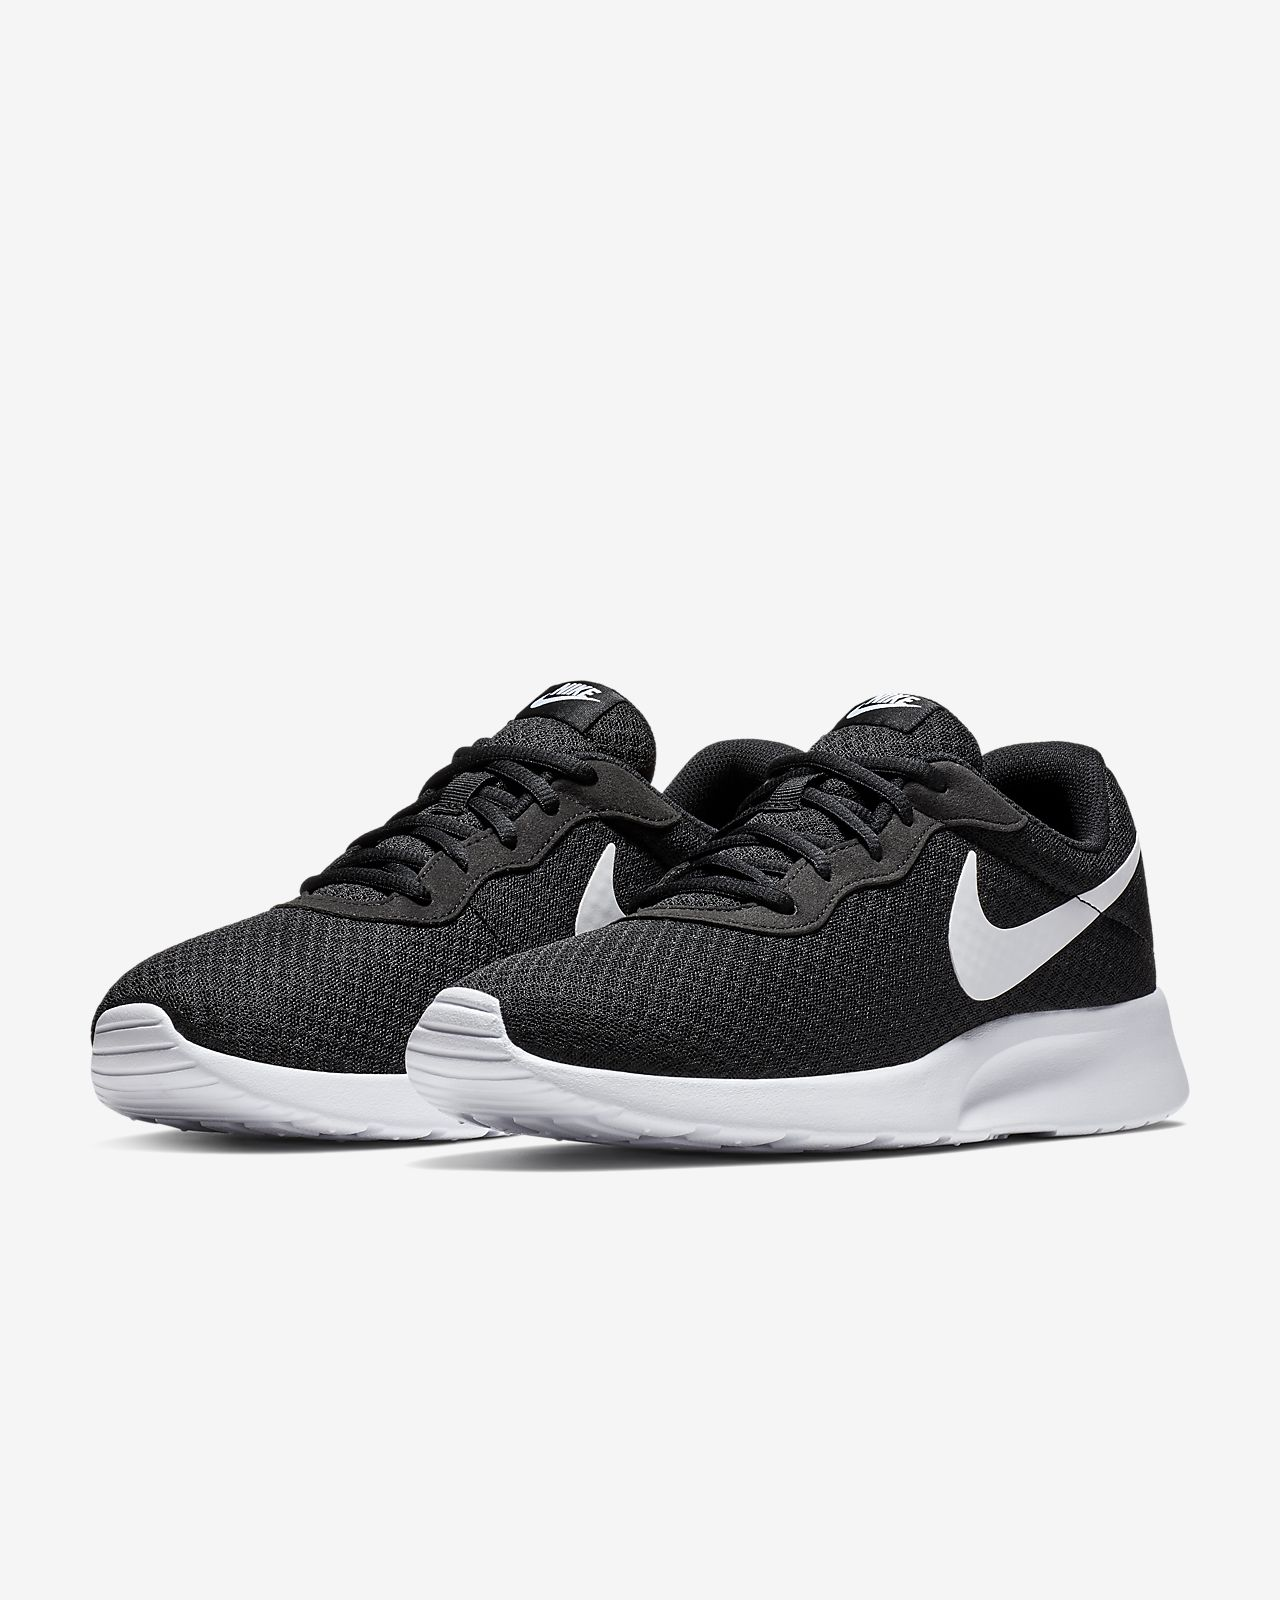 low priced 1cdc3 dc5fc Low Resolution Nike Tanjun Men s Shoe Nike Tanjun Men s Shoe